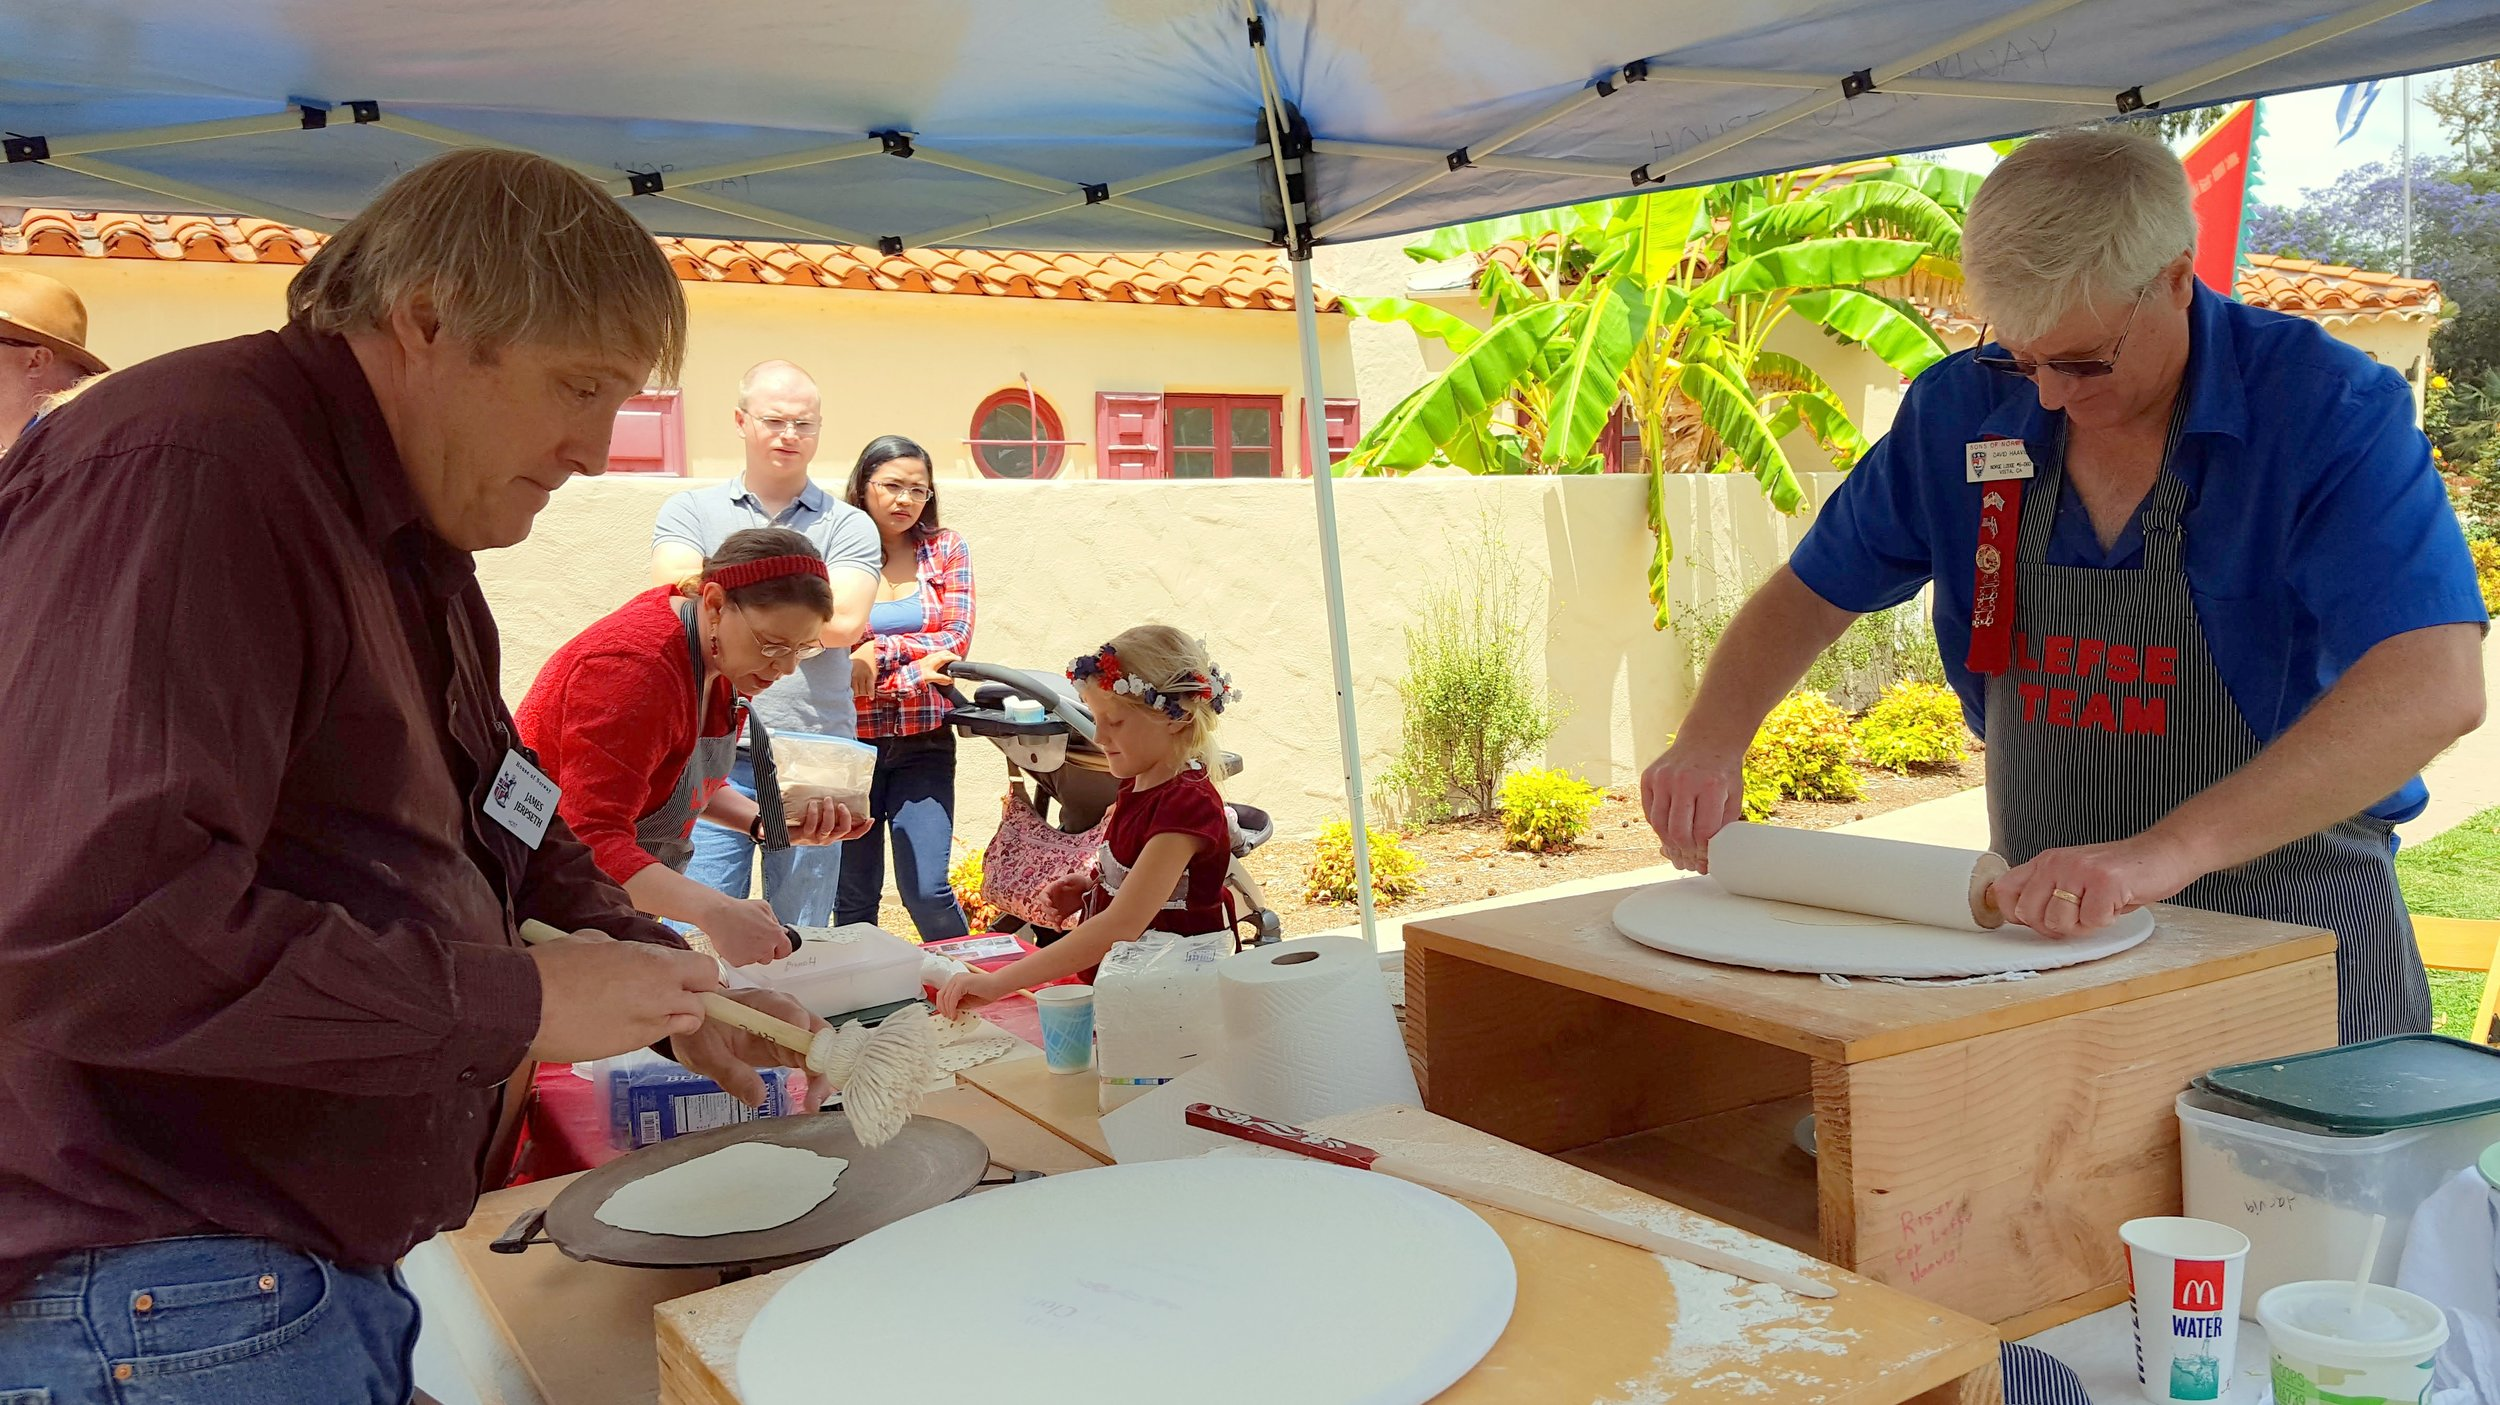 James Jerpseth and David Haavig making fresh lefsa at House of Norway Lawn Program in Balboa Park. (Photo. James Nelson.Lucas